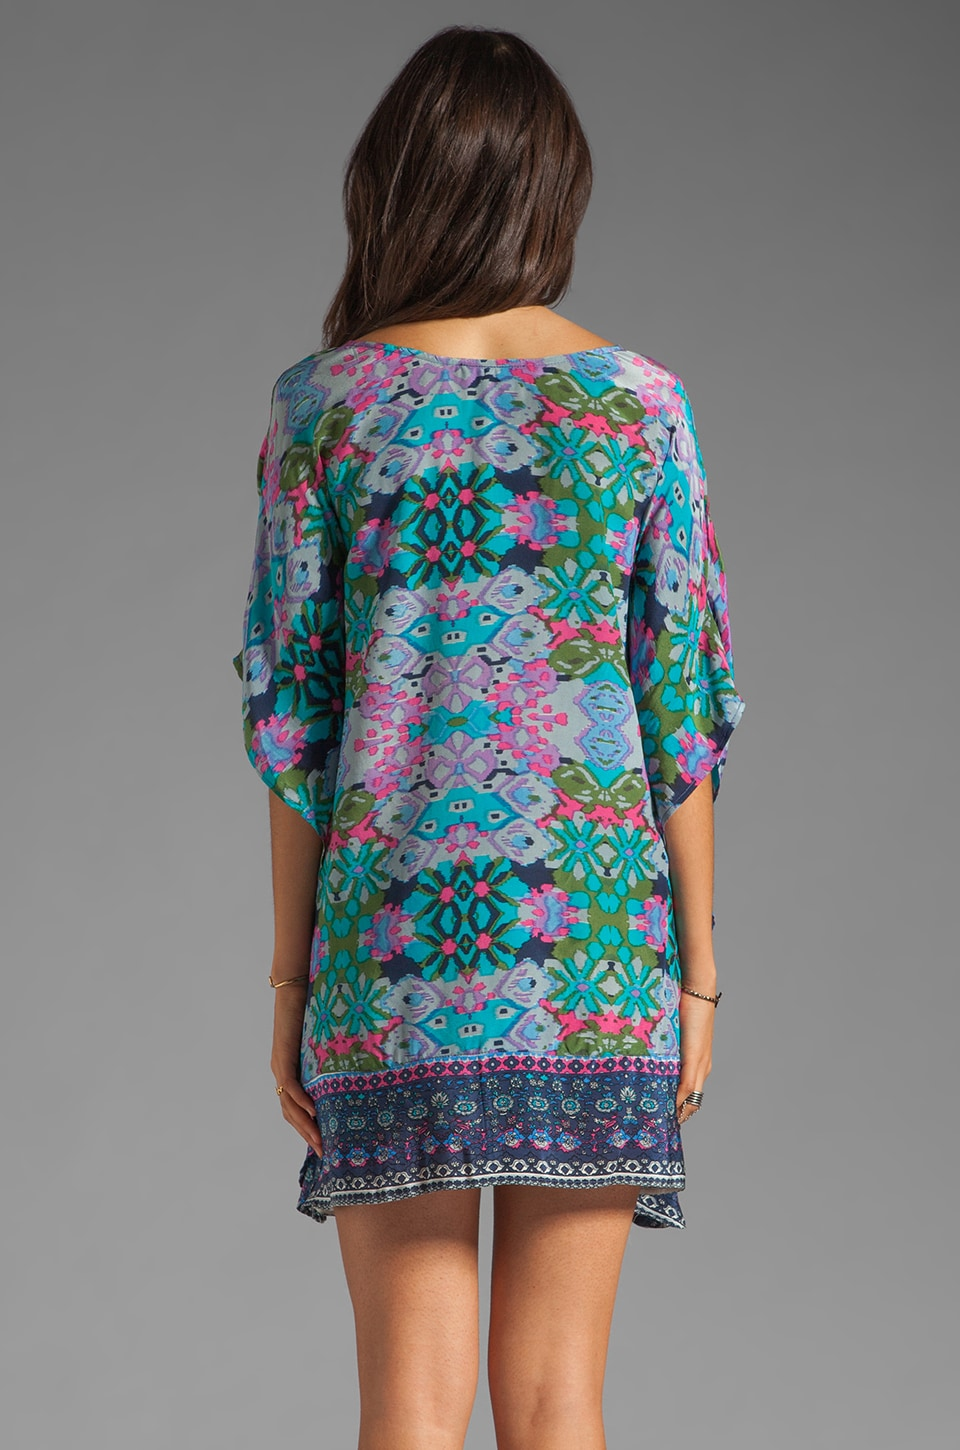 Tolani Emily Dress in Purple Ikat